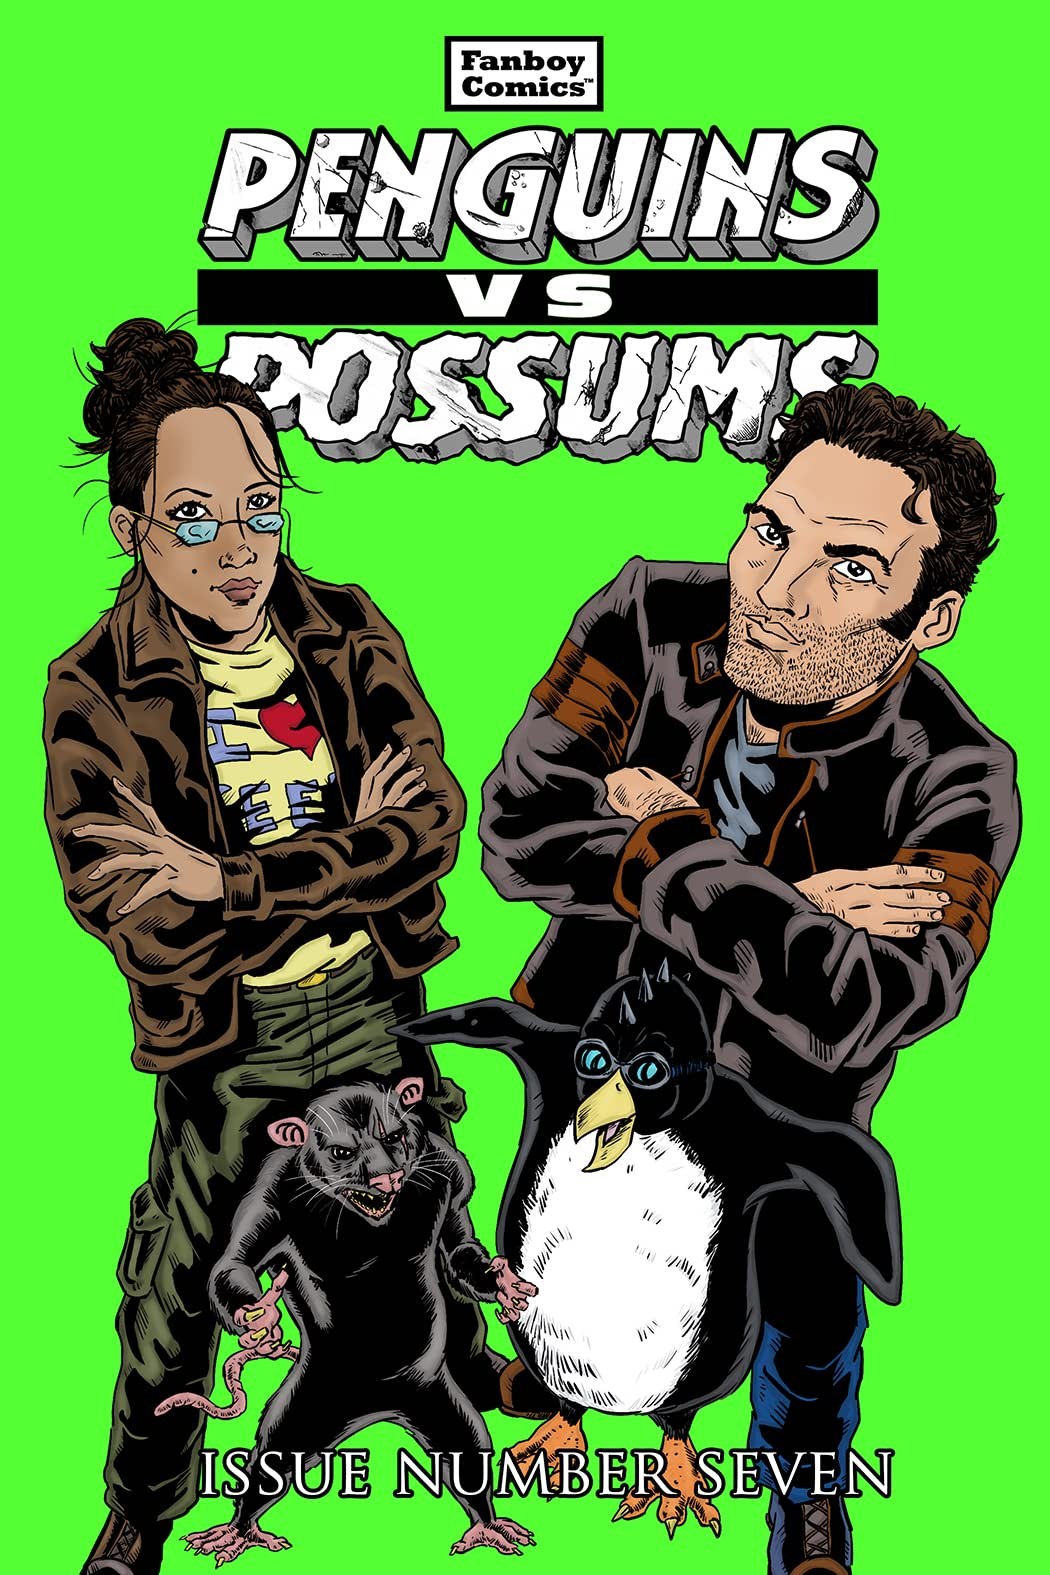 Penguins vs. Possums #7